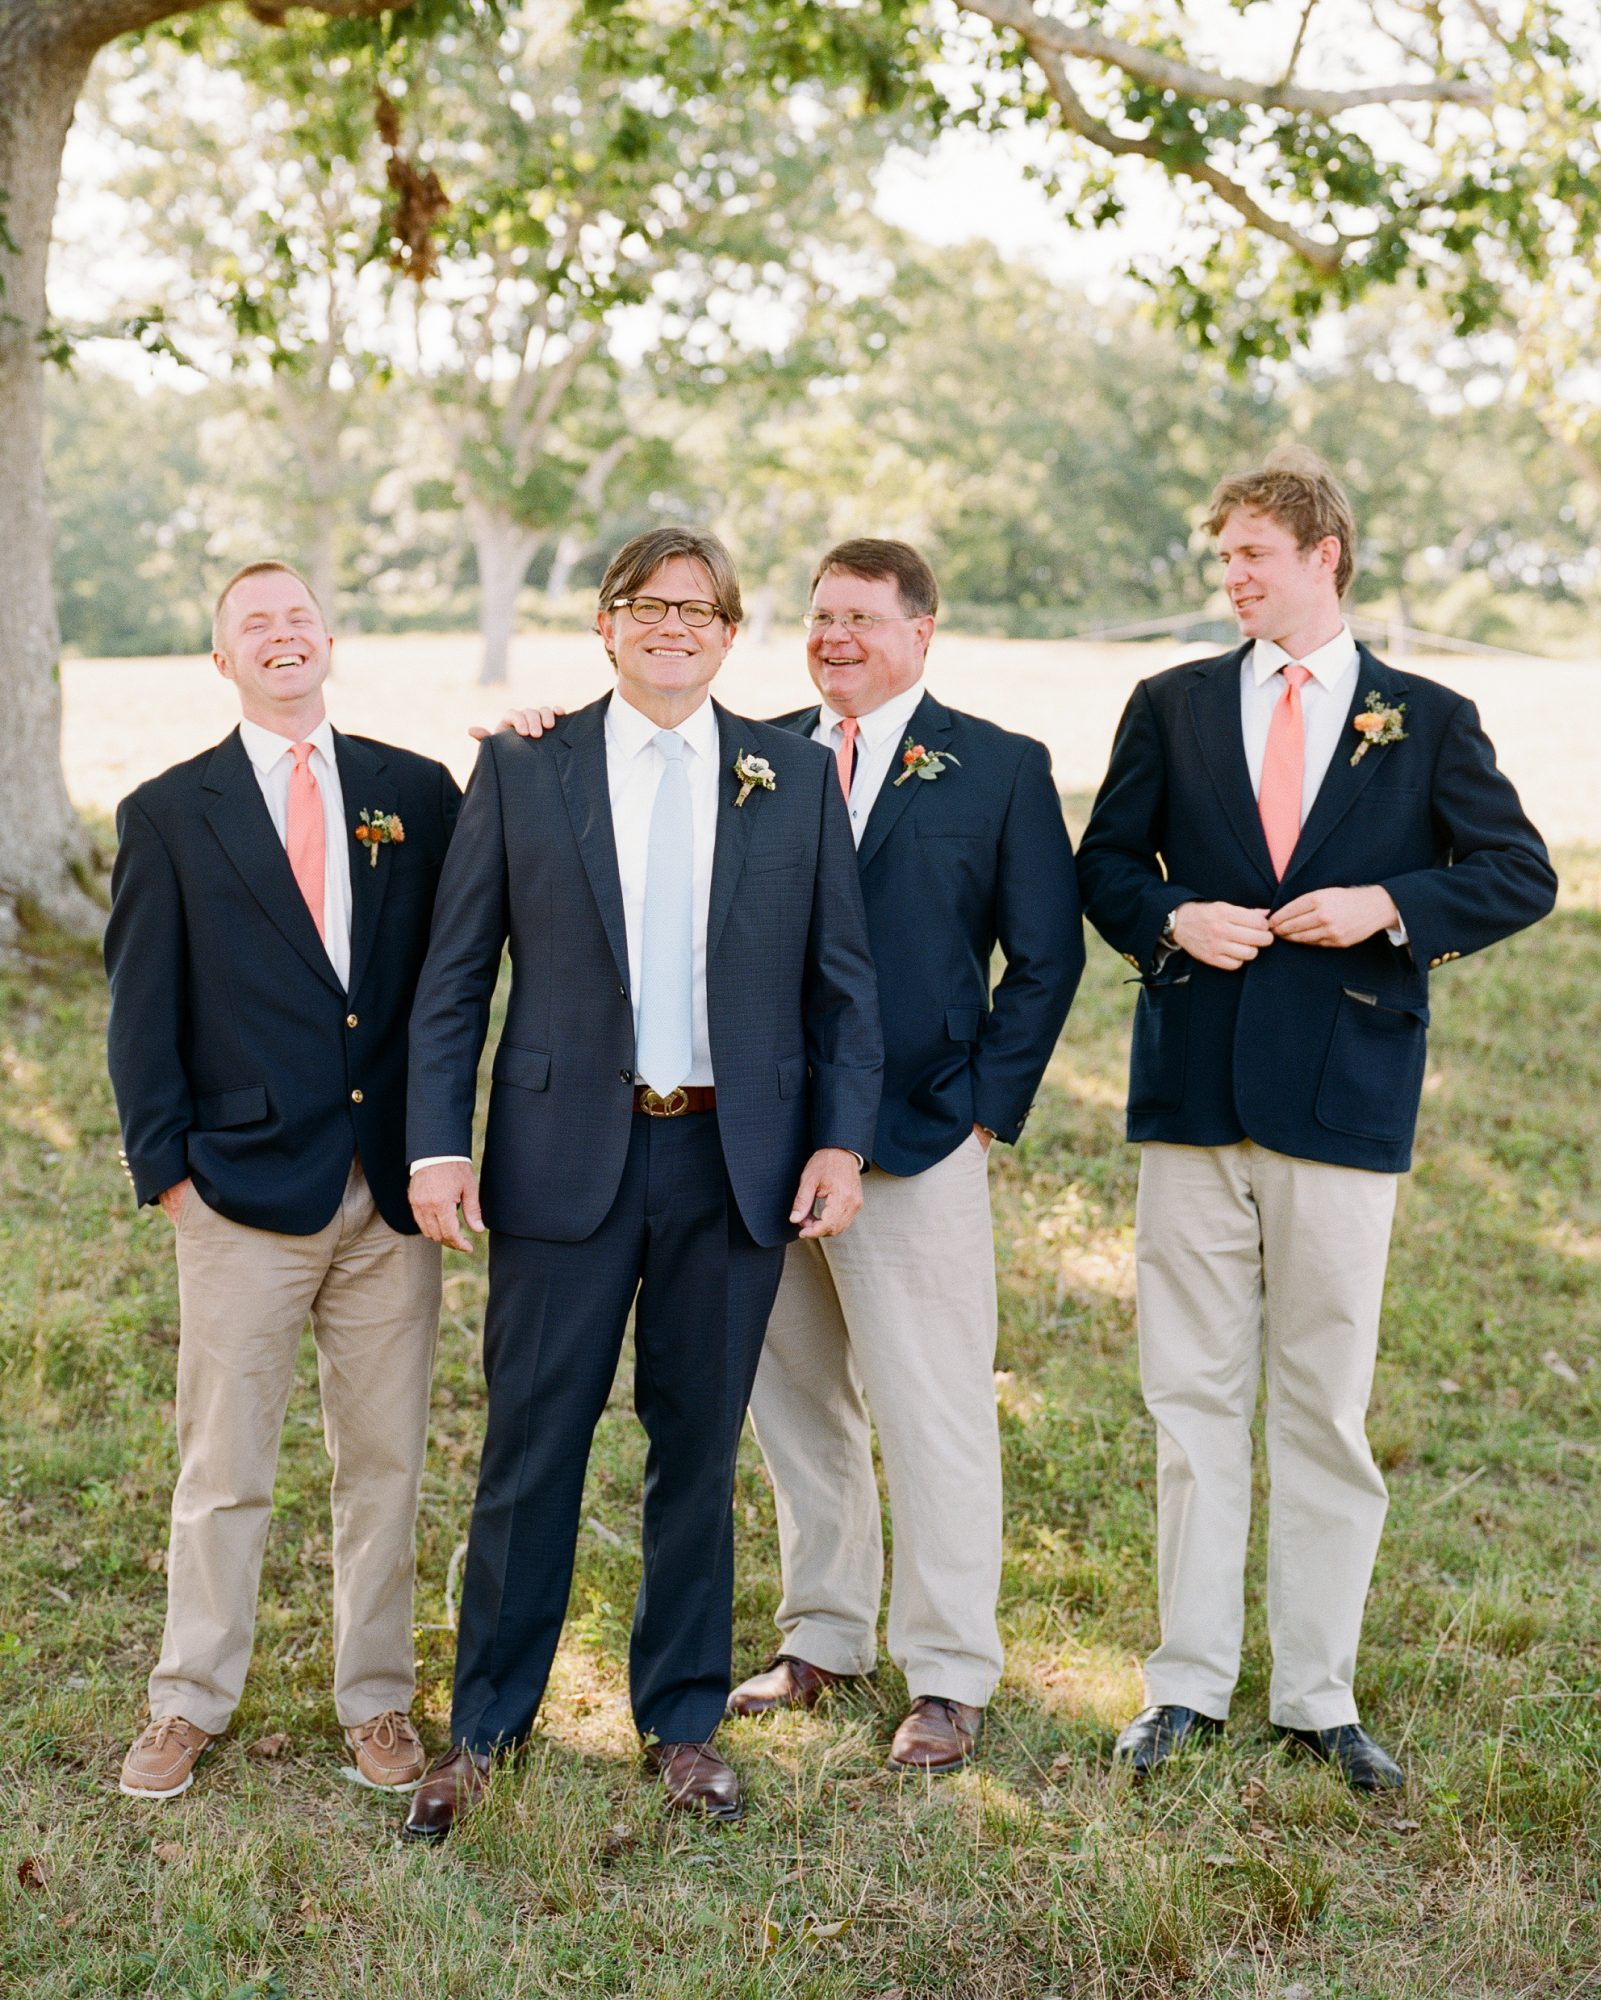 jocelyn-graham-wedding-groomsmen-0634-s111847-0315.jpg